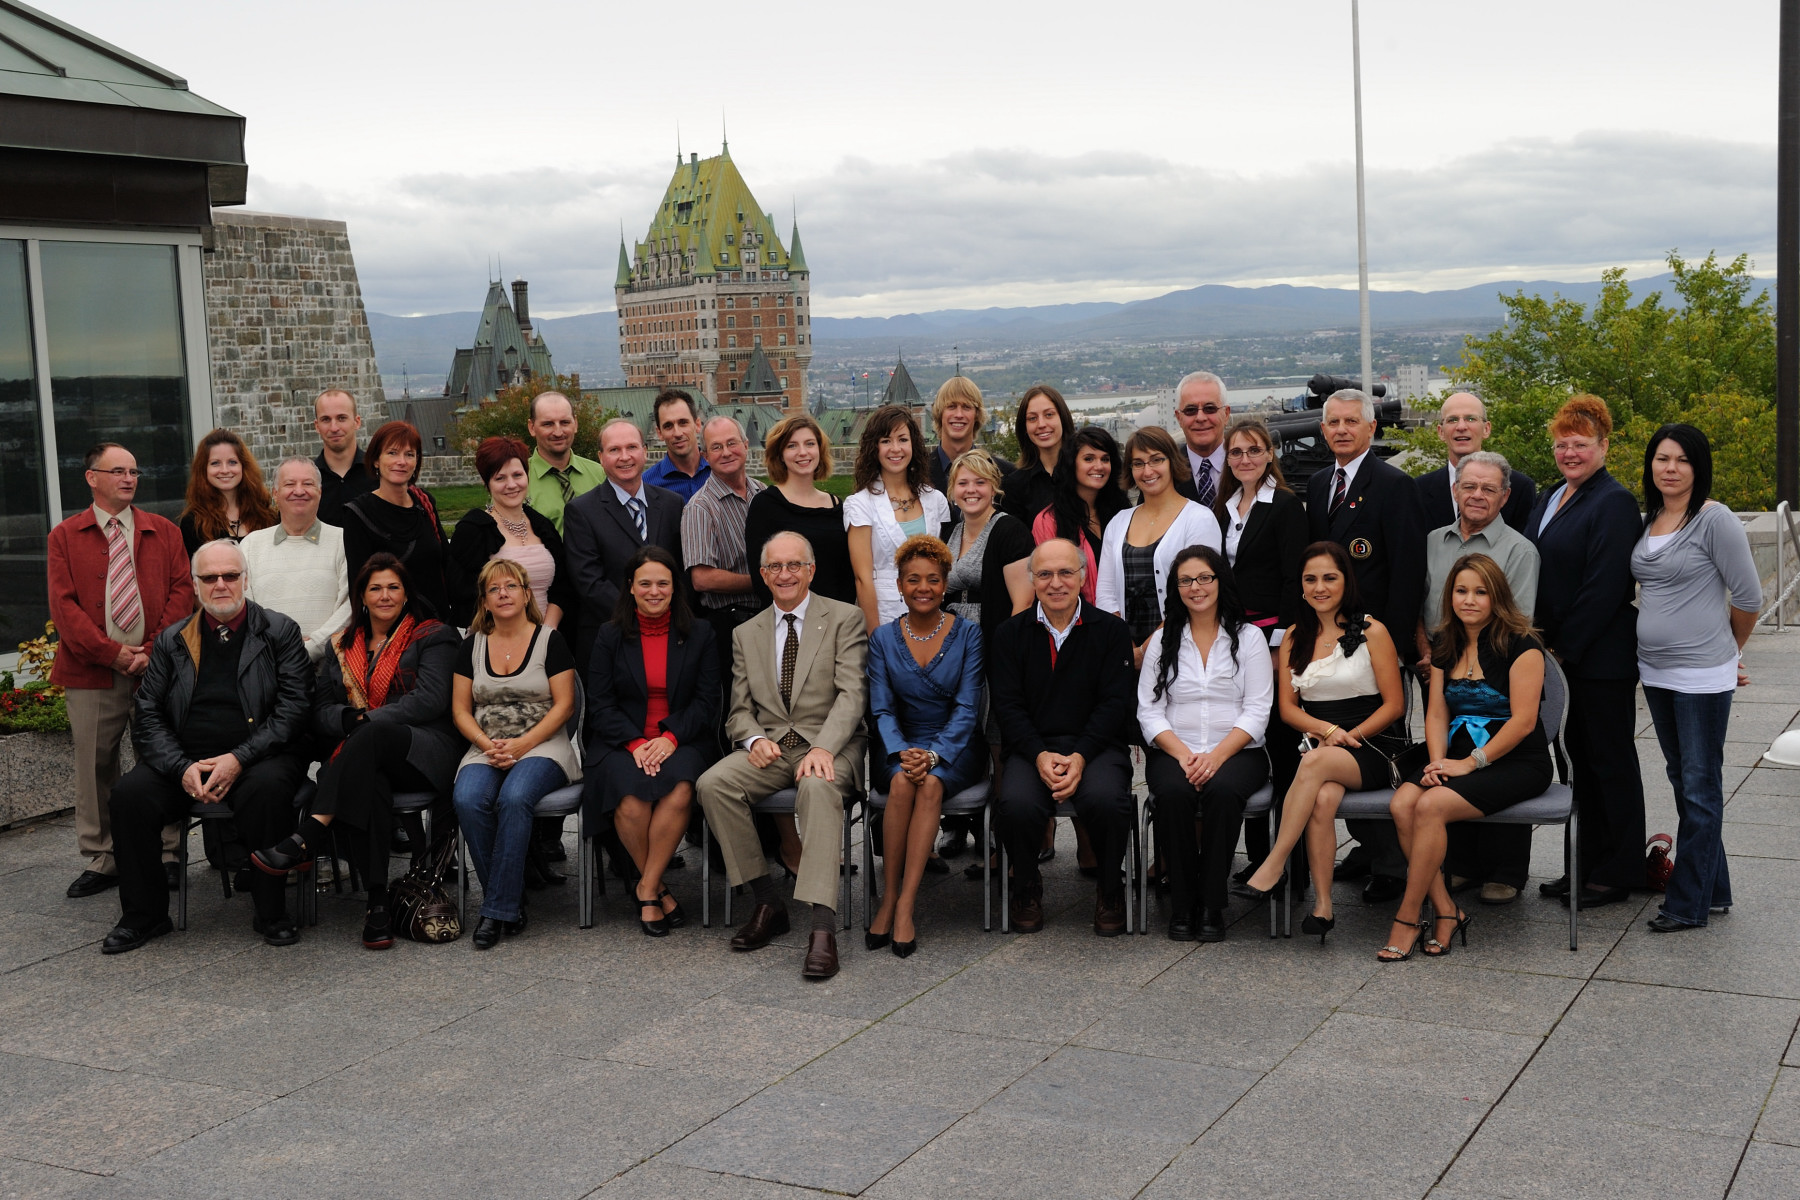 In honour of their last visit to the Citadelle of Québec, Their Excellencies met with staff for an official photo.